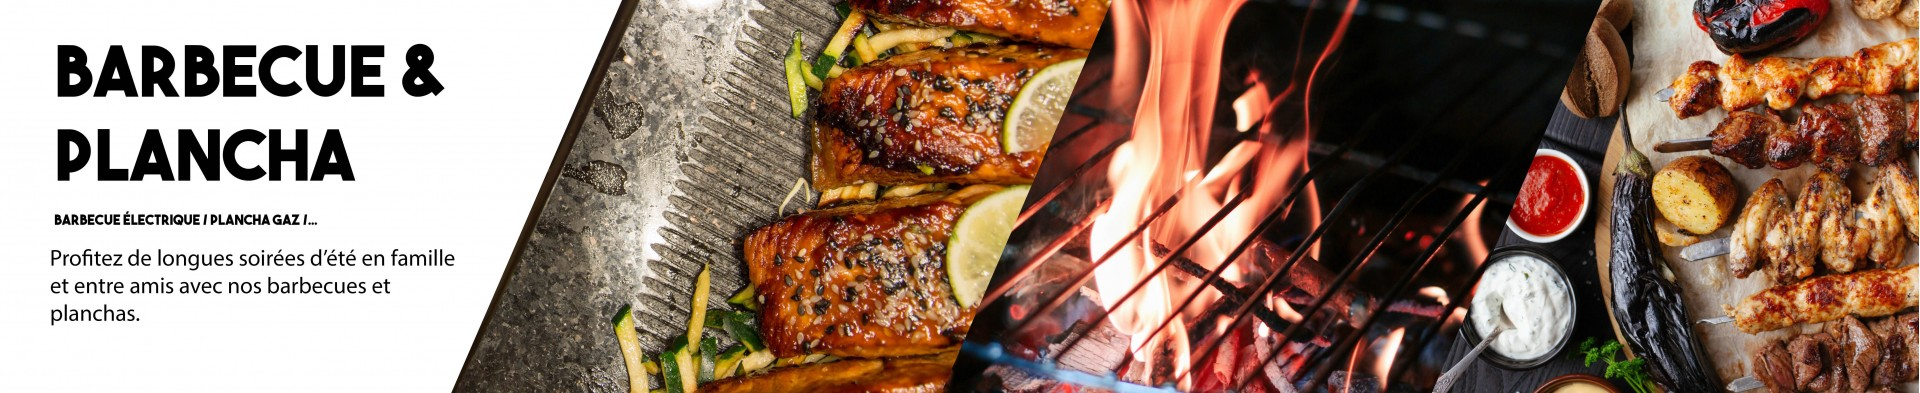 BARBECUE & PLANCHA - blackpanther.fr